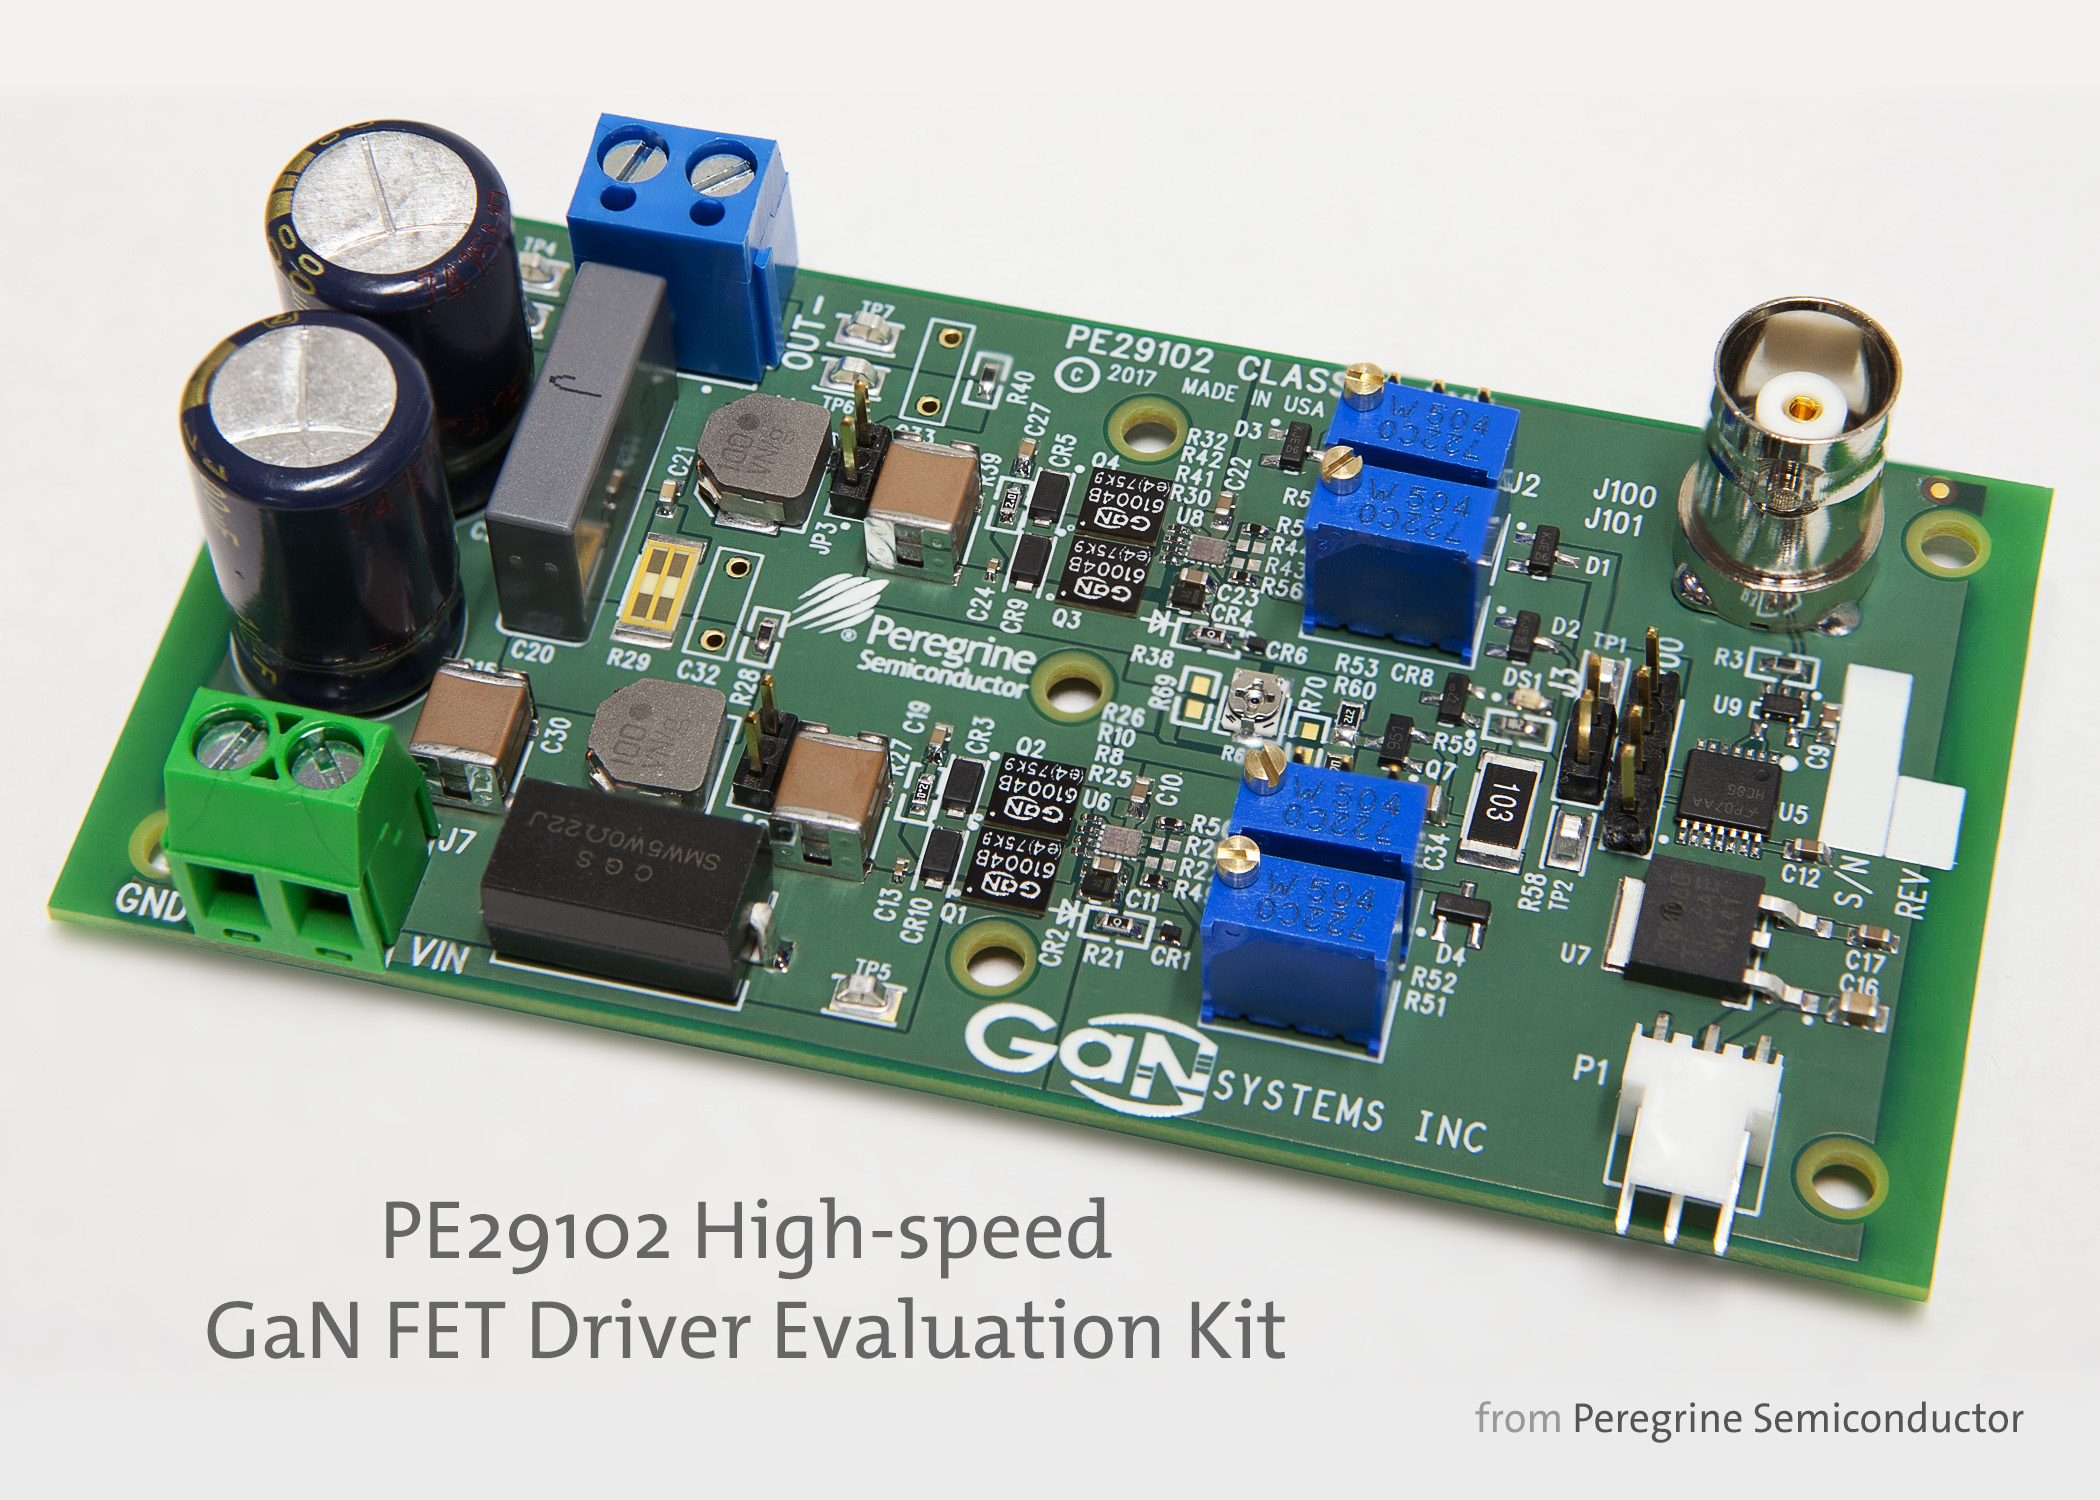 Peregrine's New FET Driver Brings Industry's Fastest